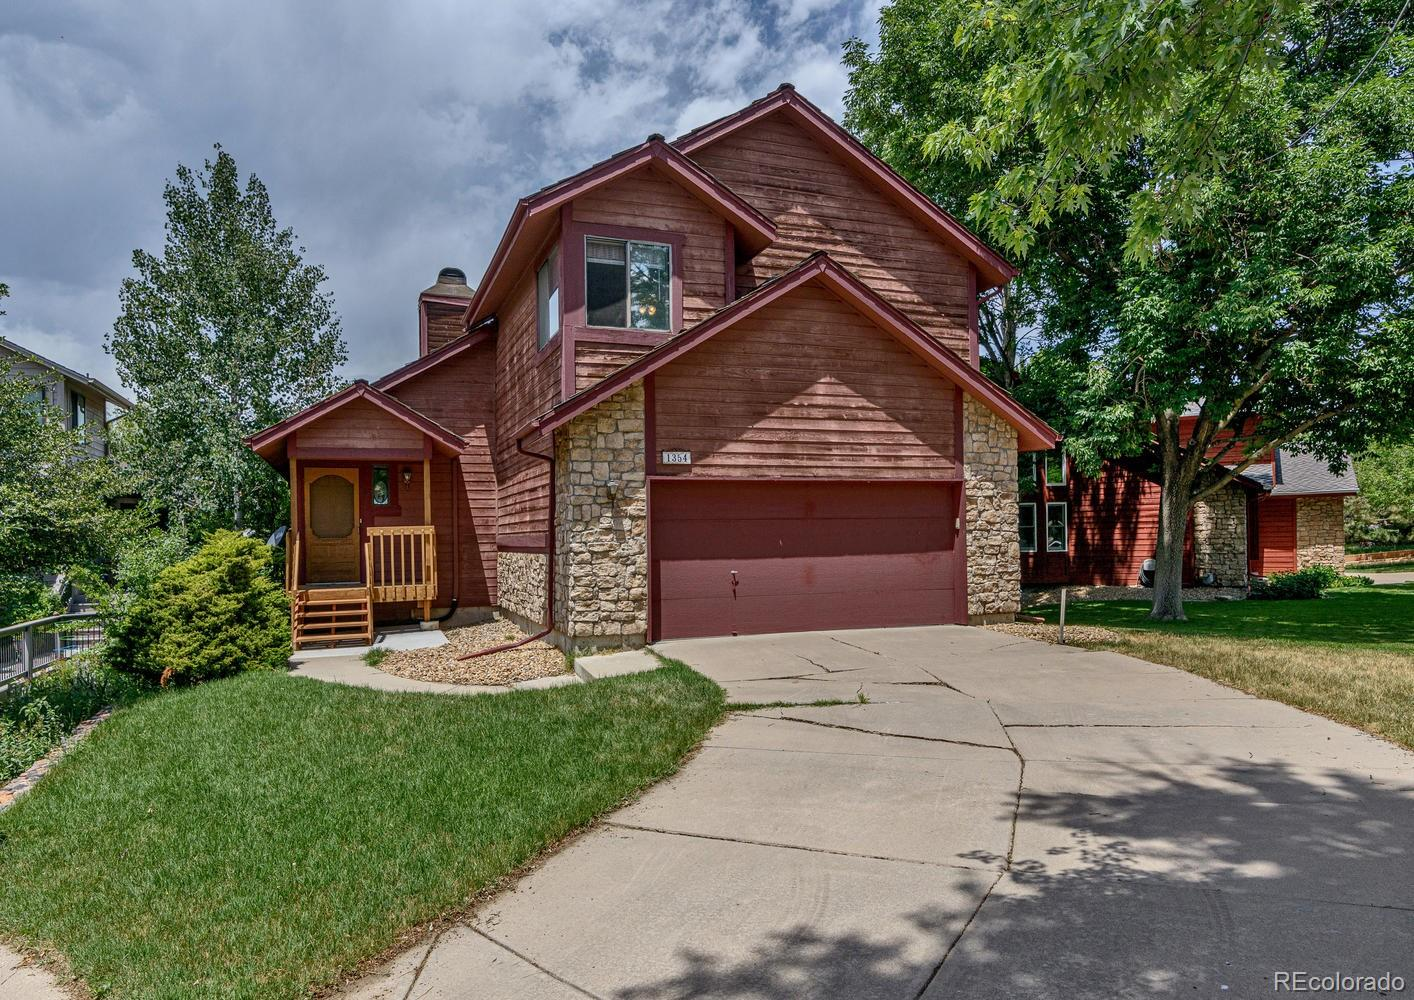 MLS# 5287137 - 1 - 1354 W Briarwood Avenue, Littleton, CO 80120